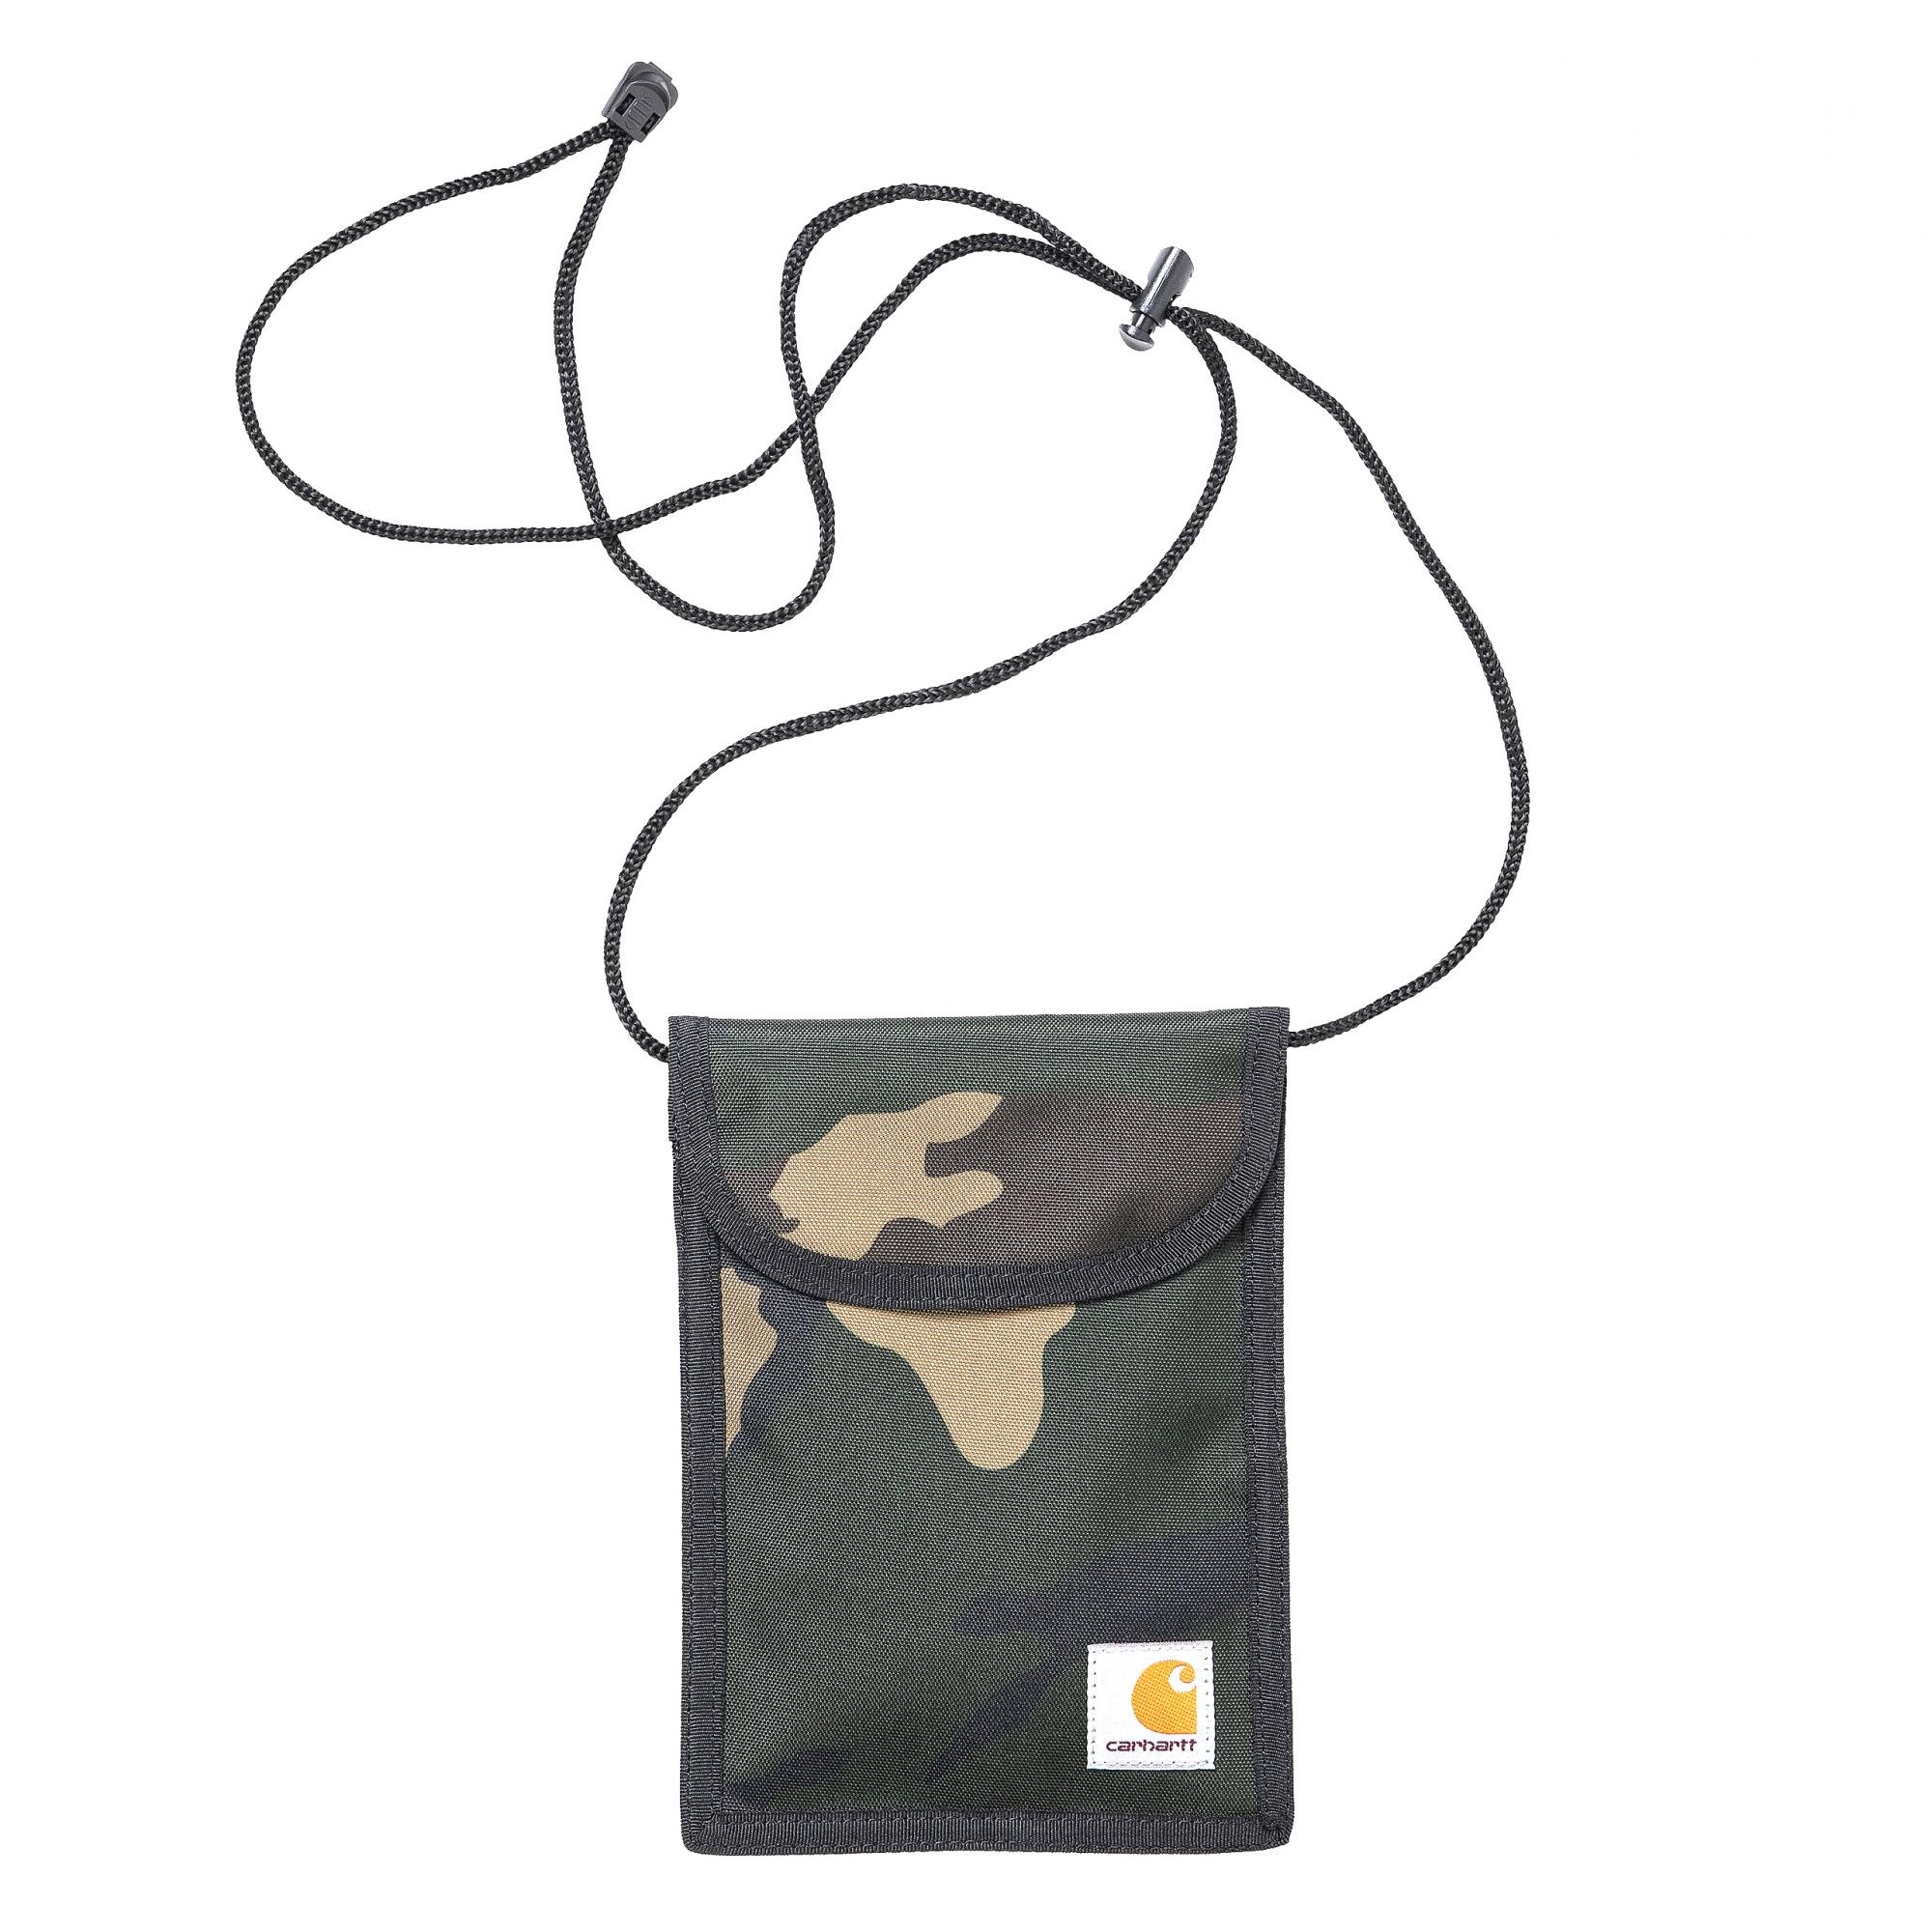 Carhartt Collins Neck Pouch Camo laurel